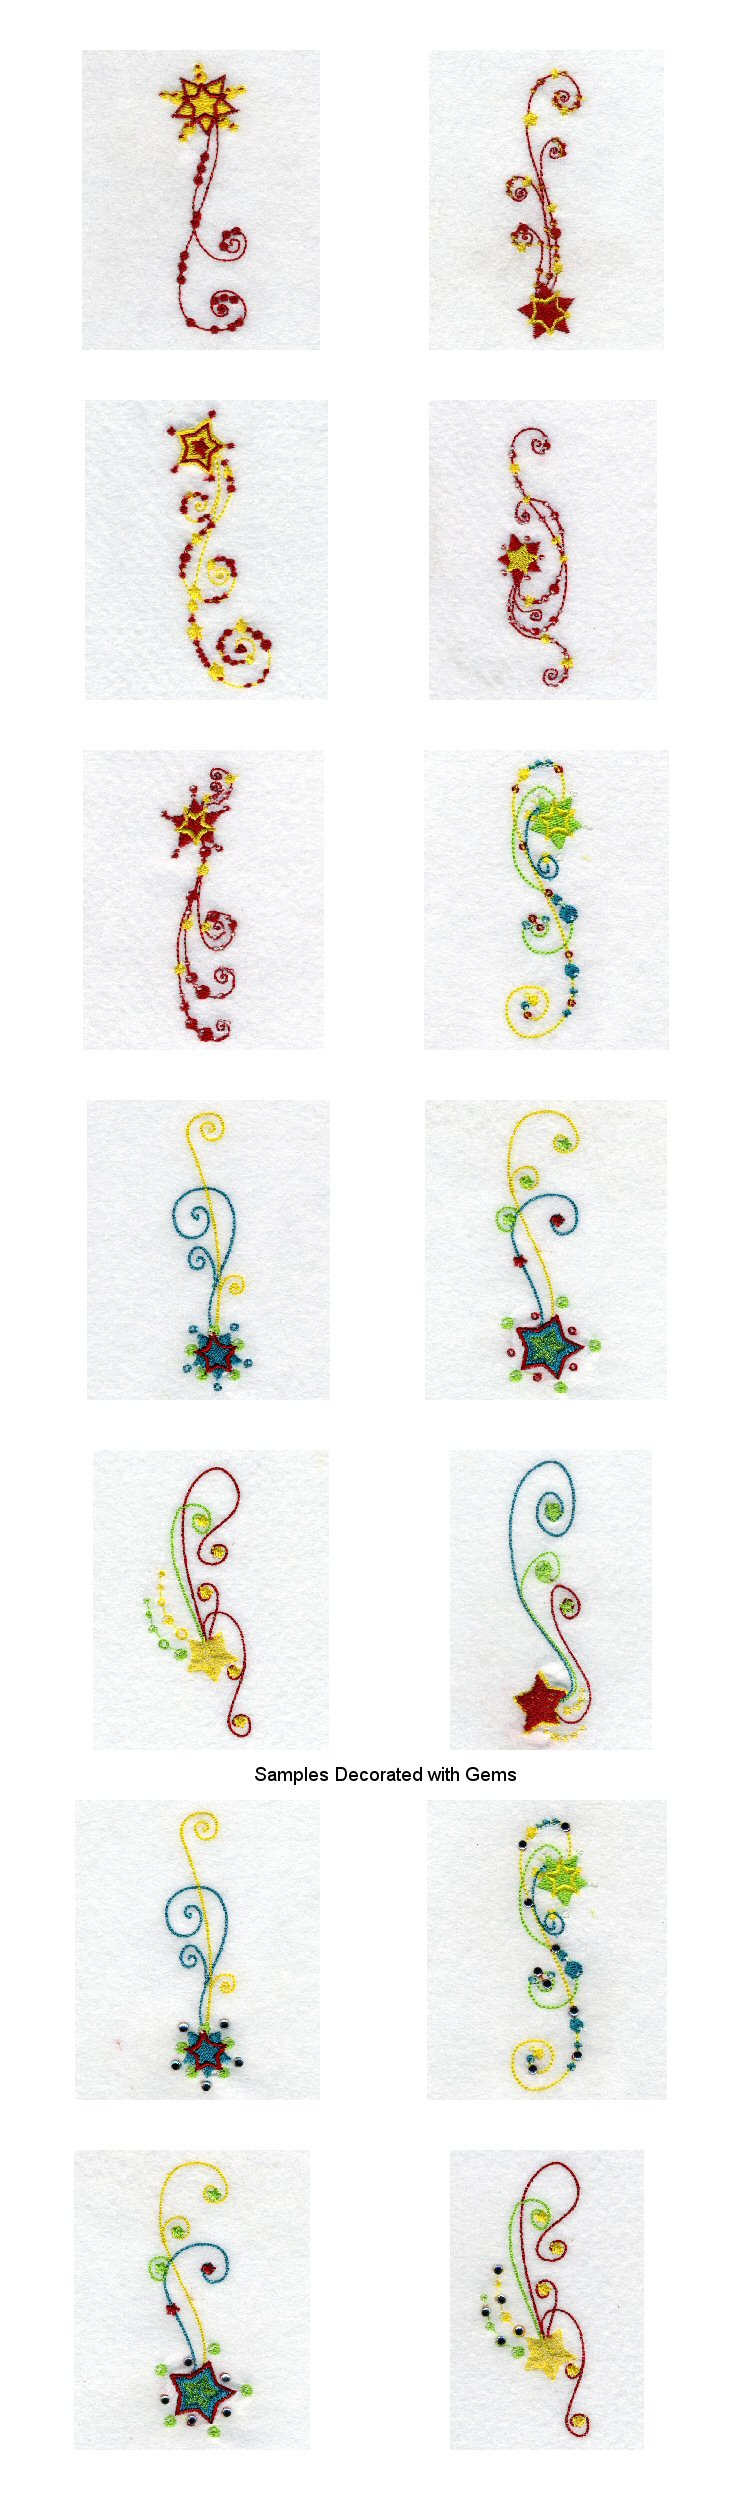 Glittering Stars Embroidery Machine Design Details